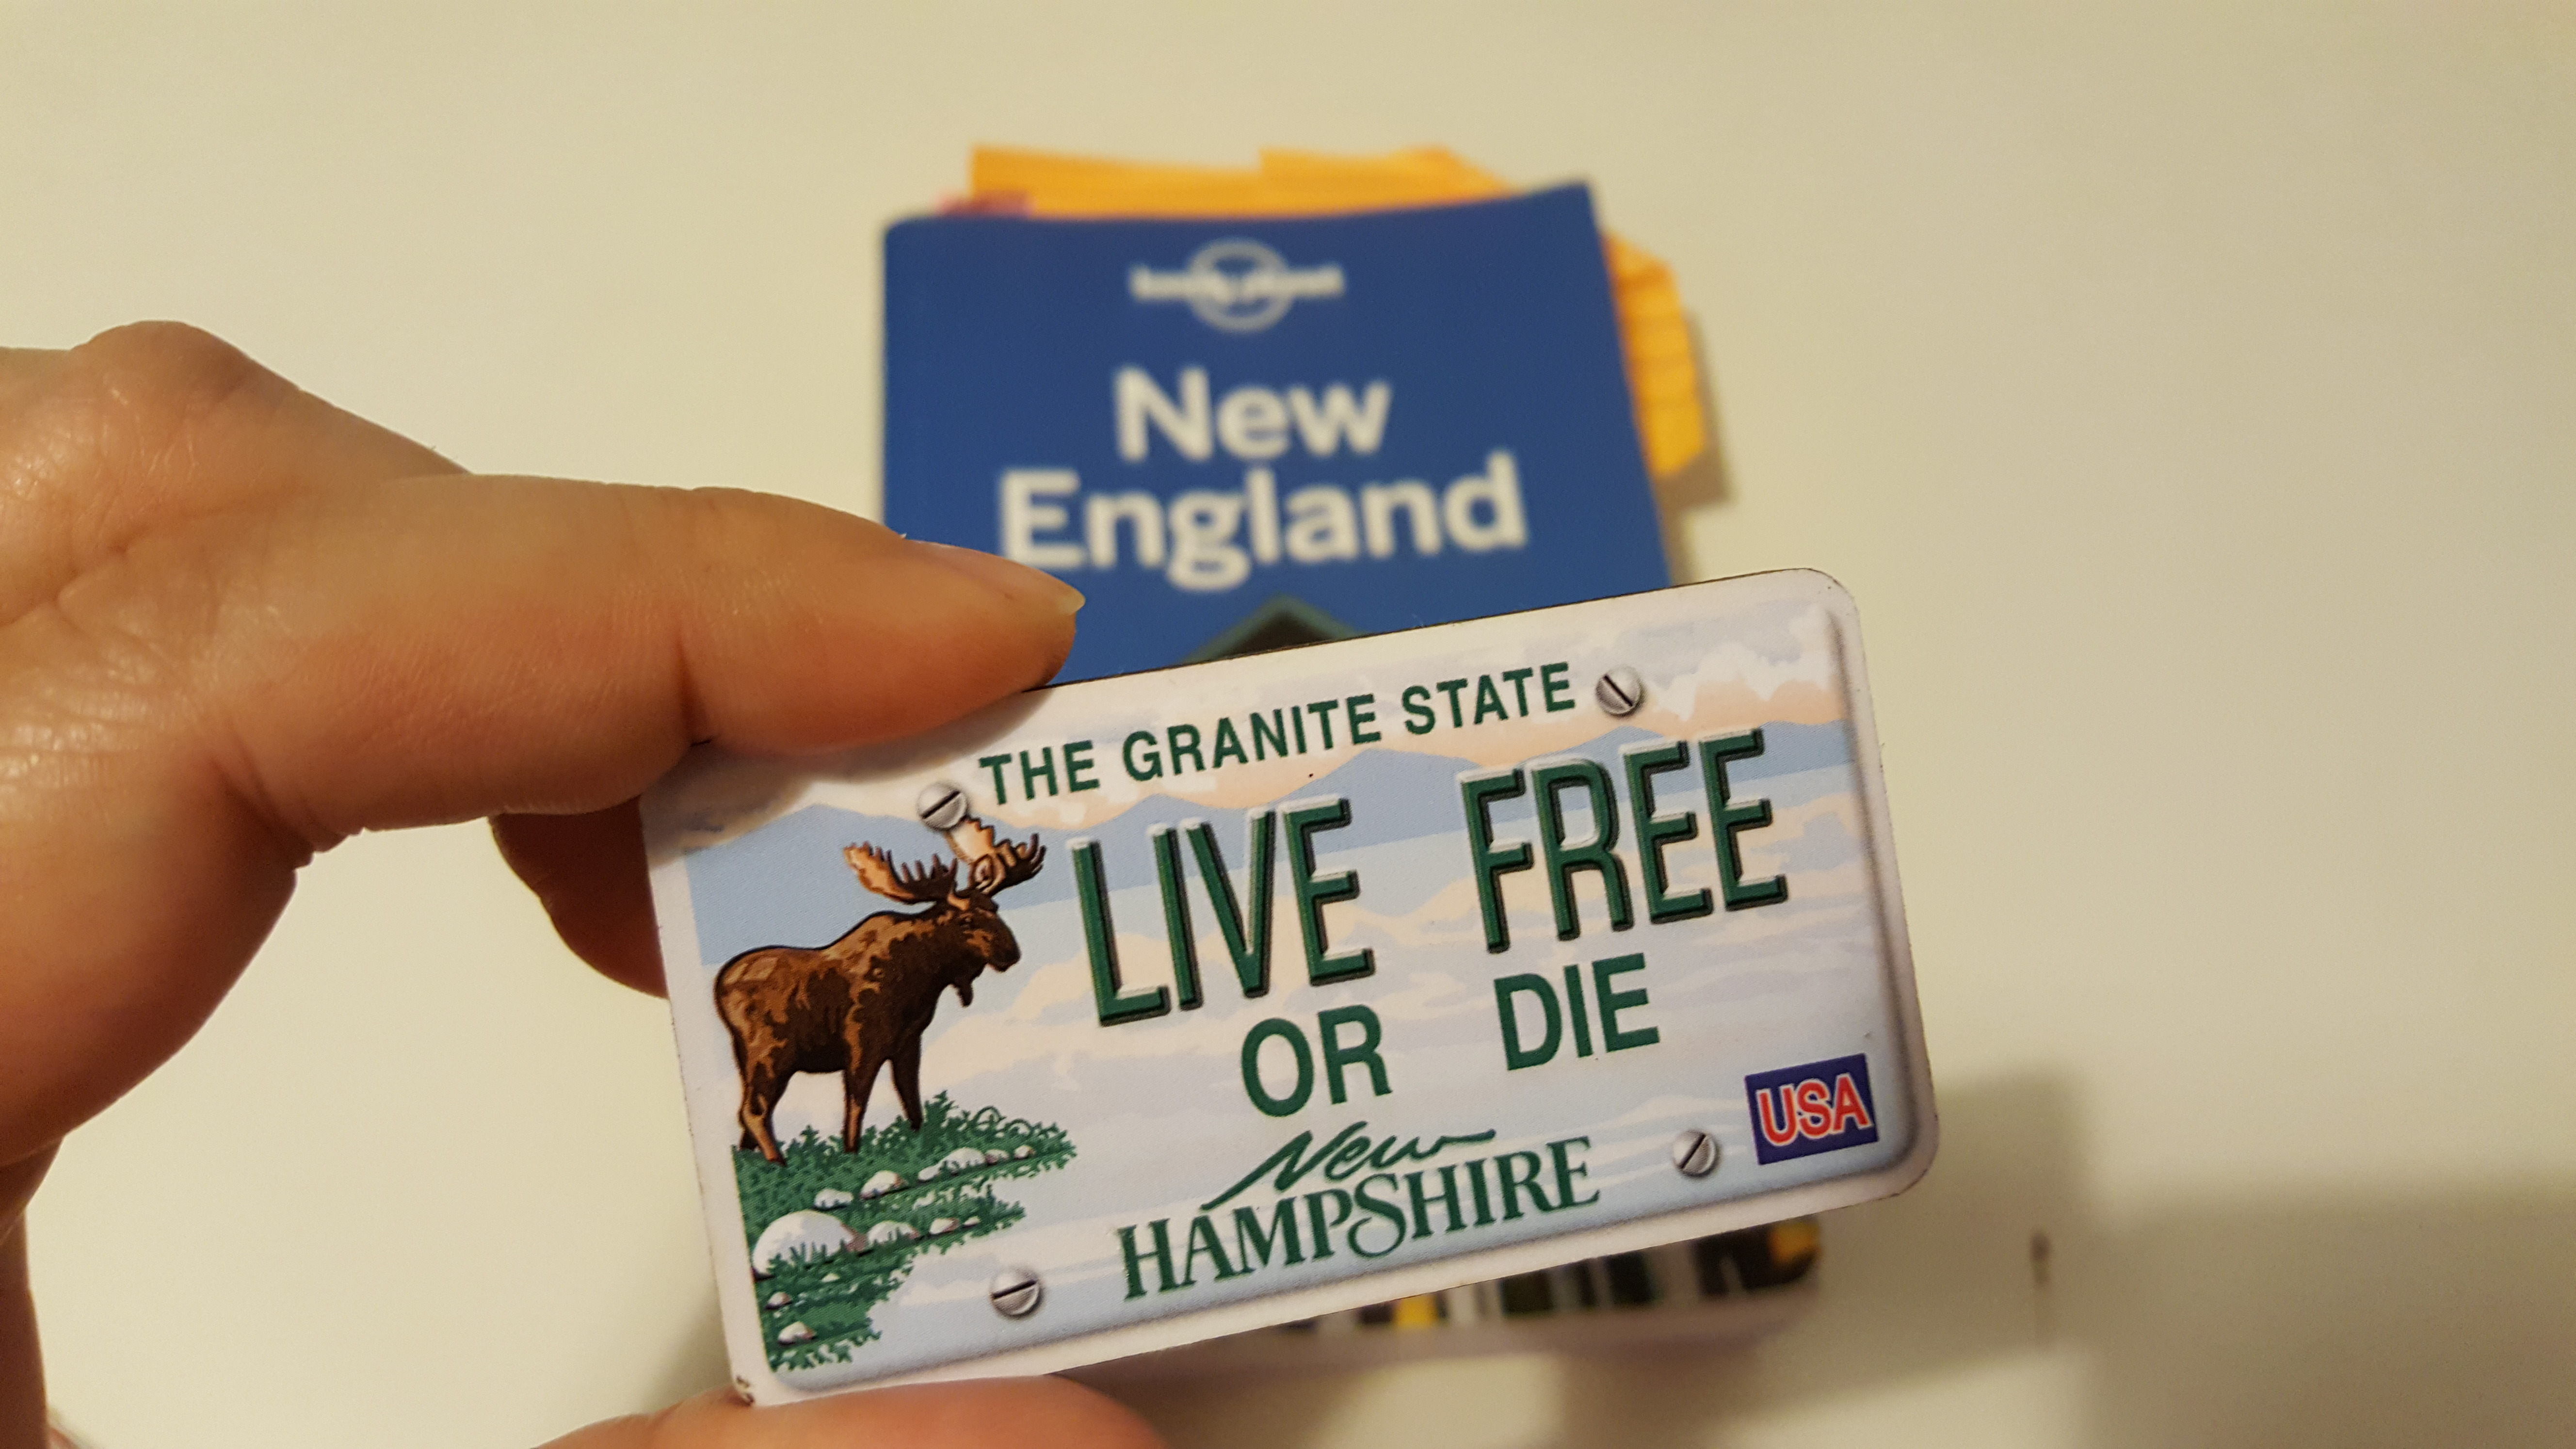 New Hampshire - mytravelife